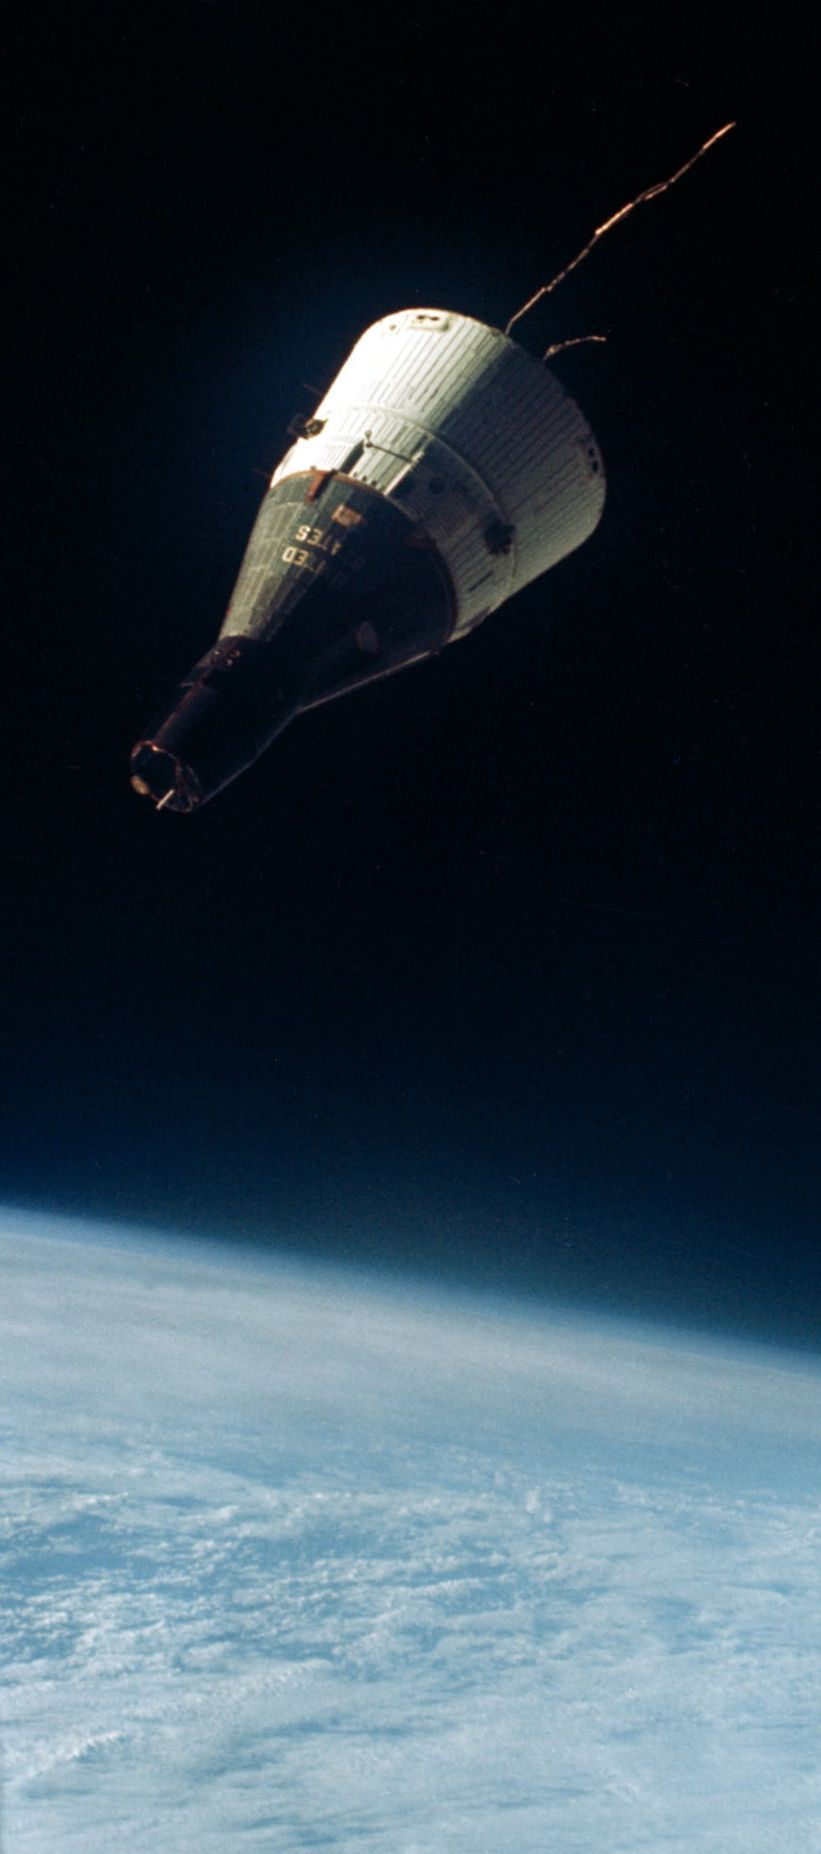 spacecraft gemini - photo #23